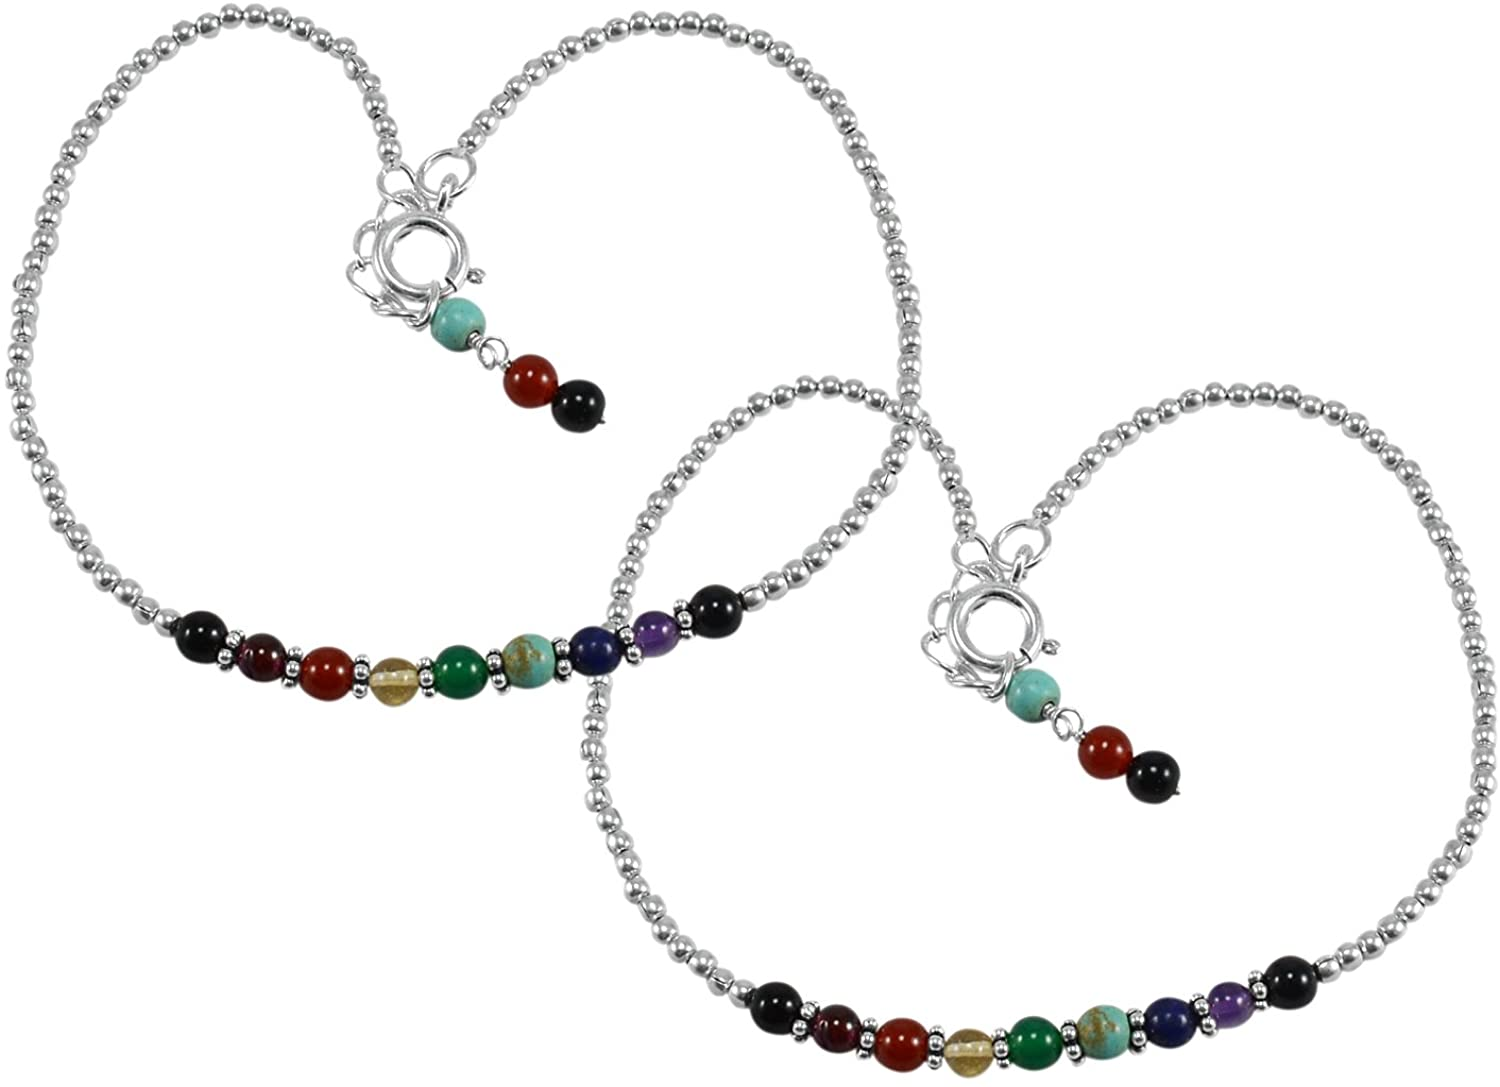 Saamarth Impex Multi Gemstone 925 Sterling Silver Anklet PG-133379